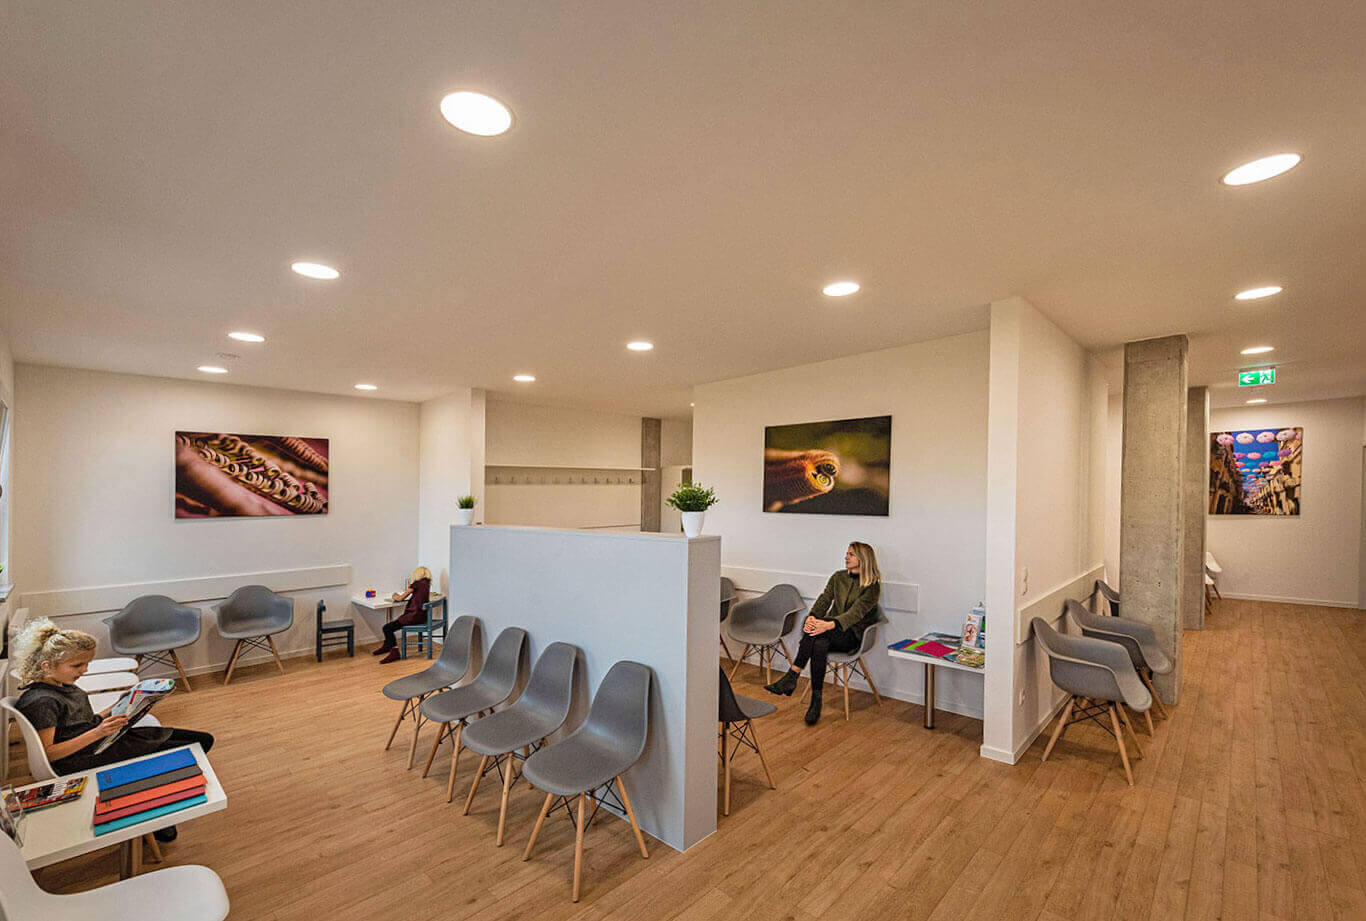 Three patients are waiting in the friendly, bright waiting area